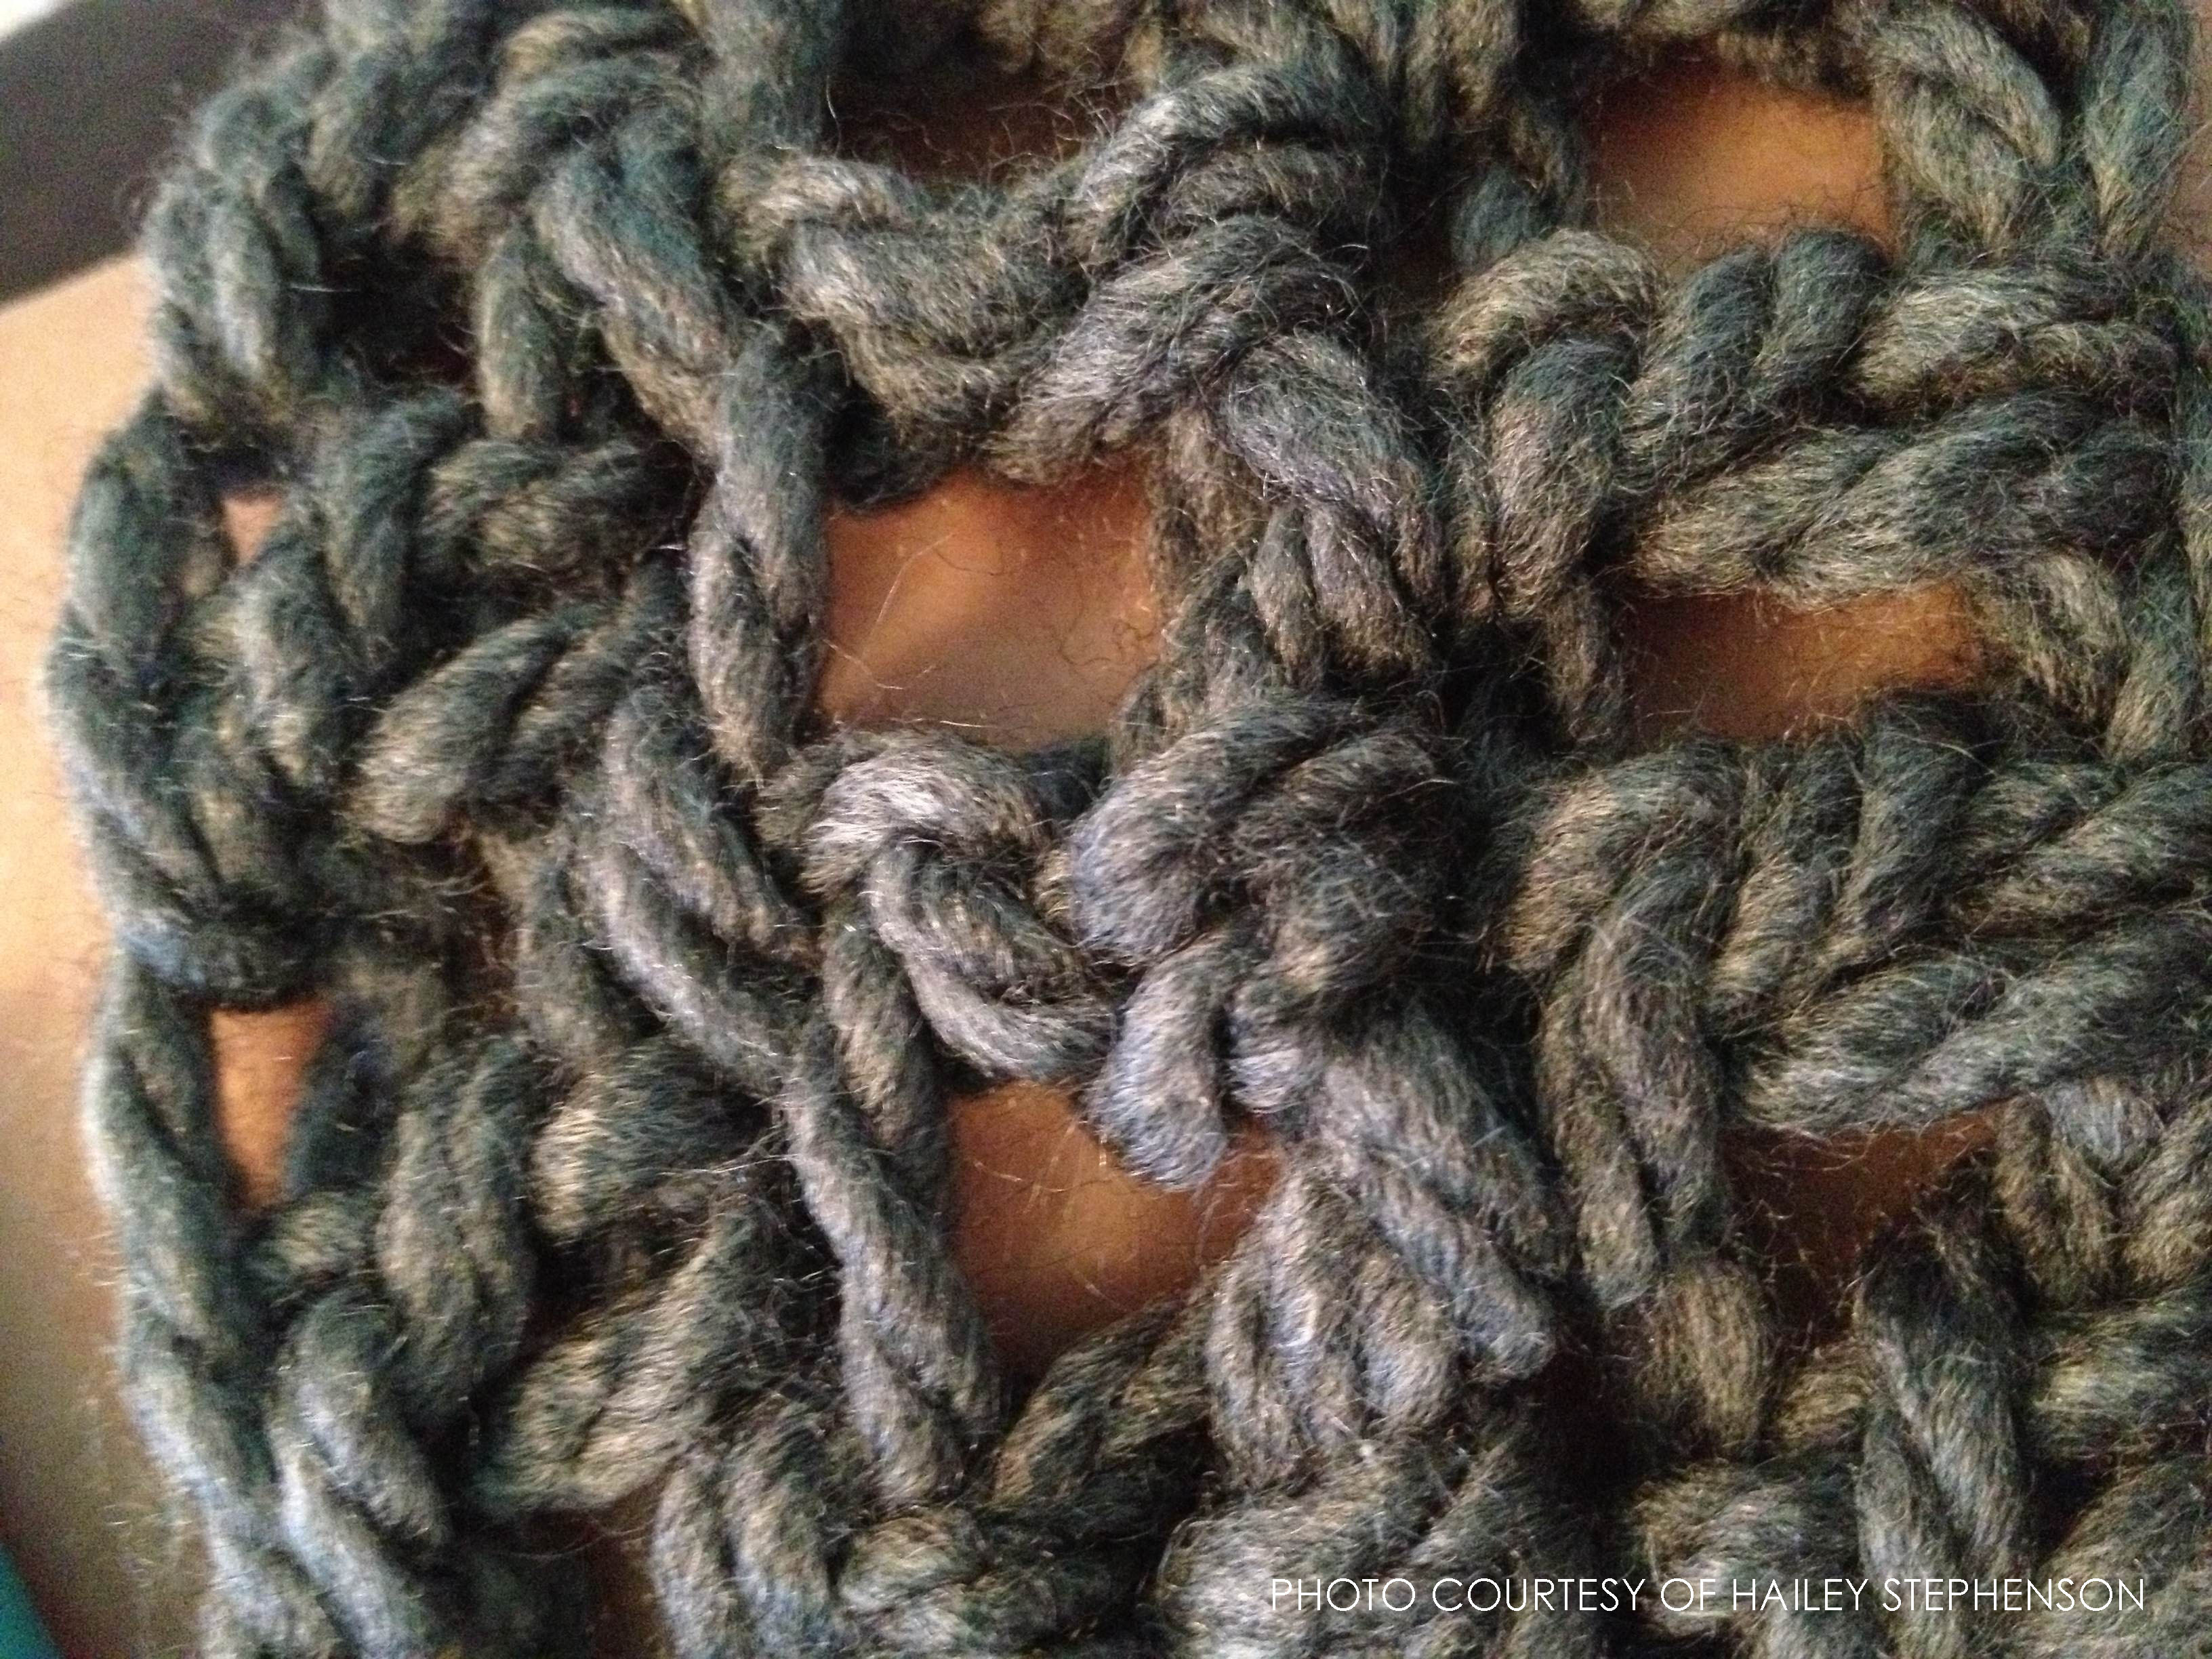 A picture of a typical crocheting pattern.